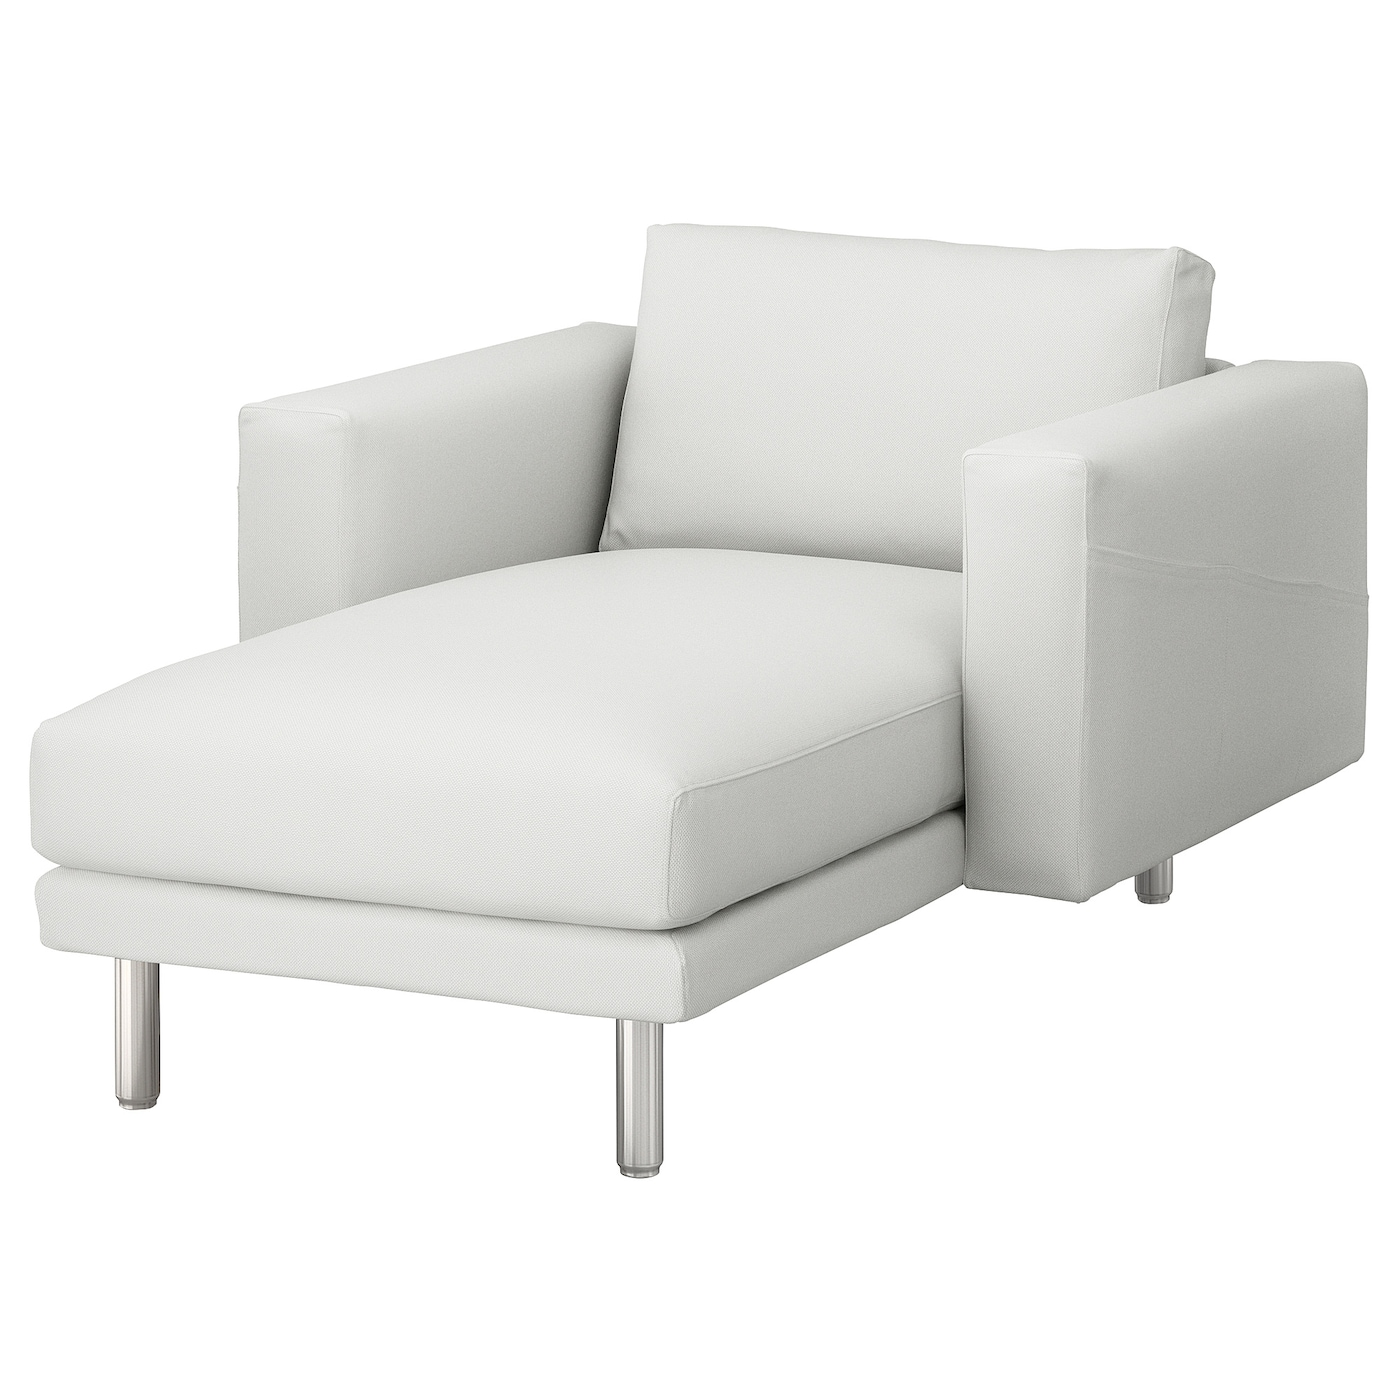 Norsborg chaise longue finnsta white metal ikea for Chaise longue ikea